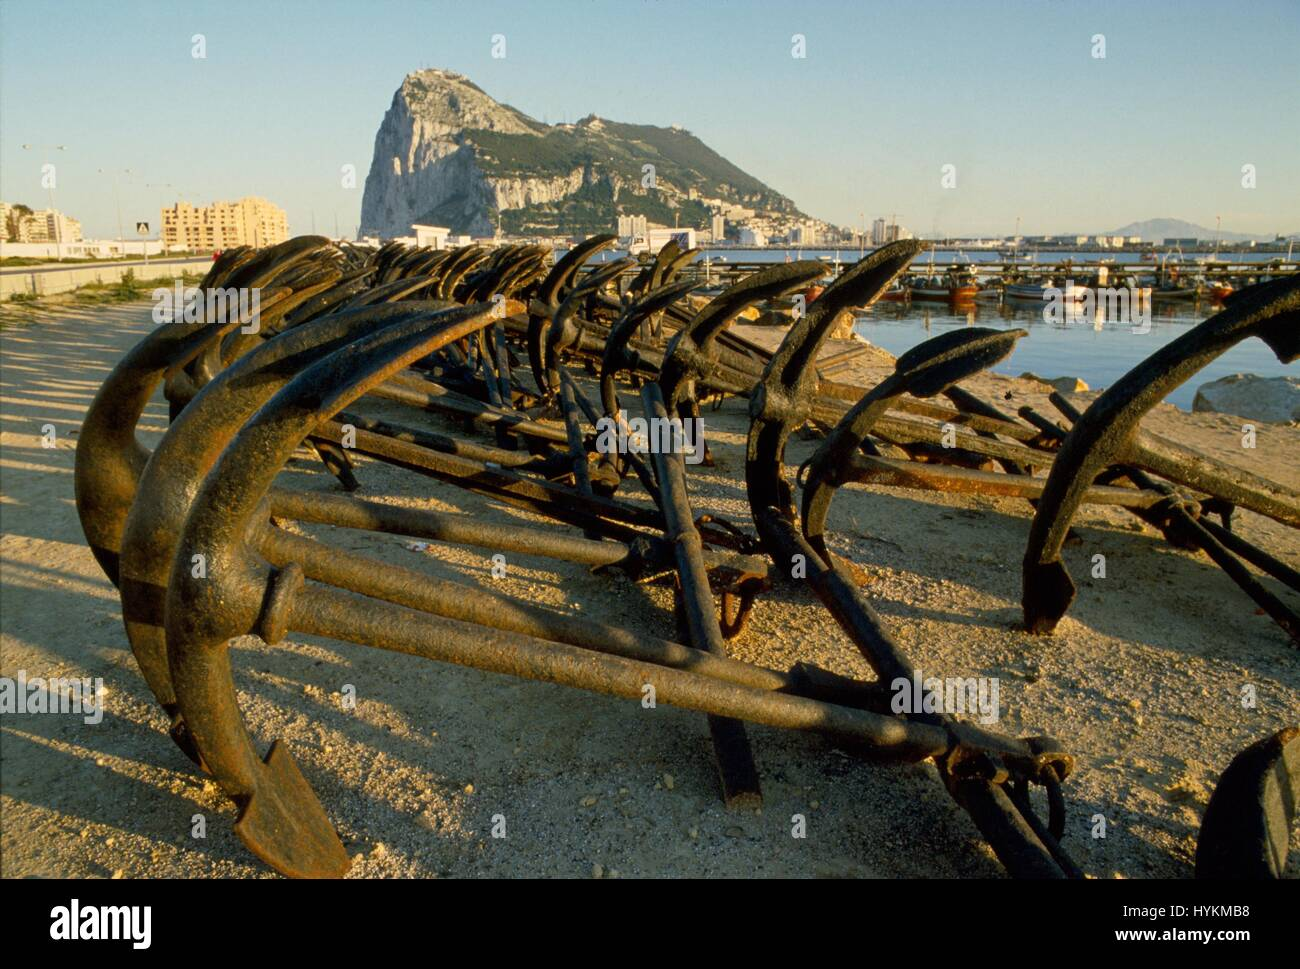 Gibraltar, the Rock seen from the beach of La Linea in Spain - Stock Image